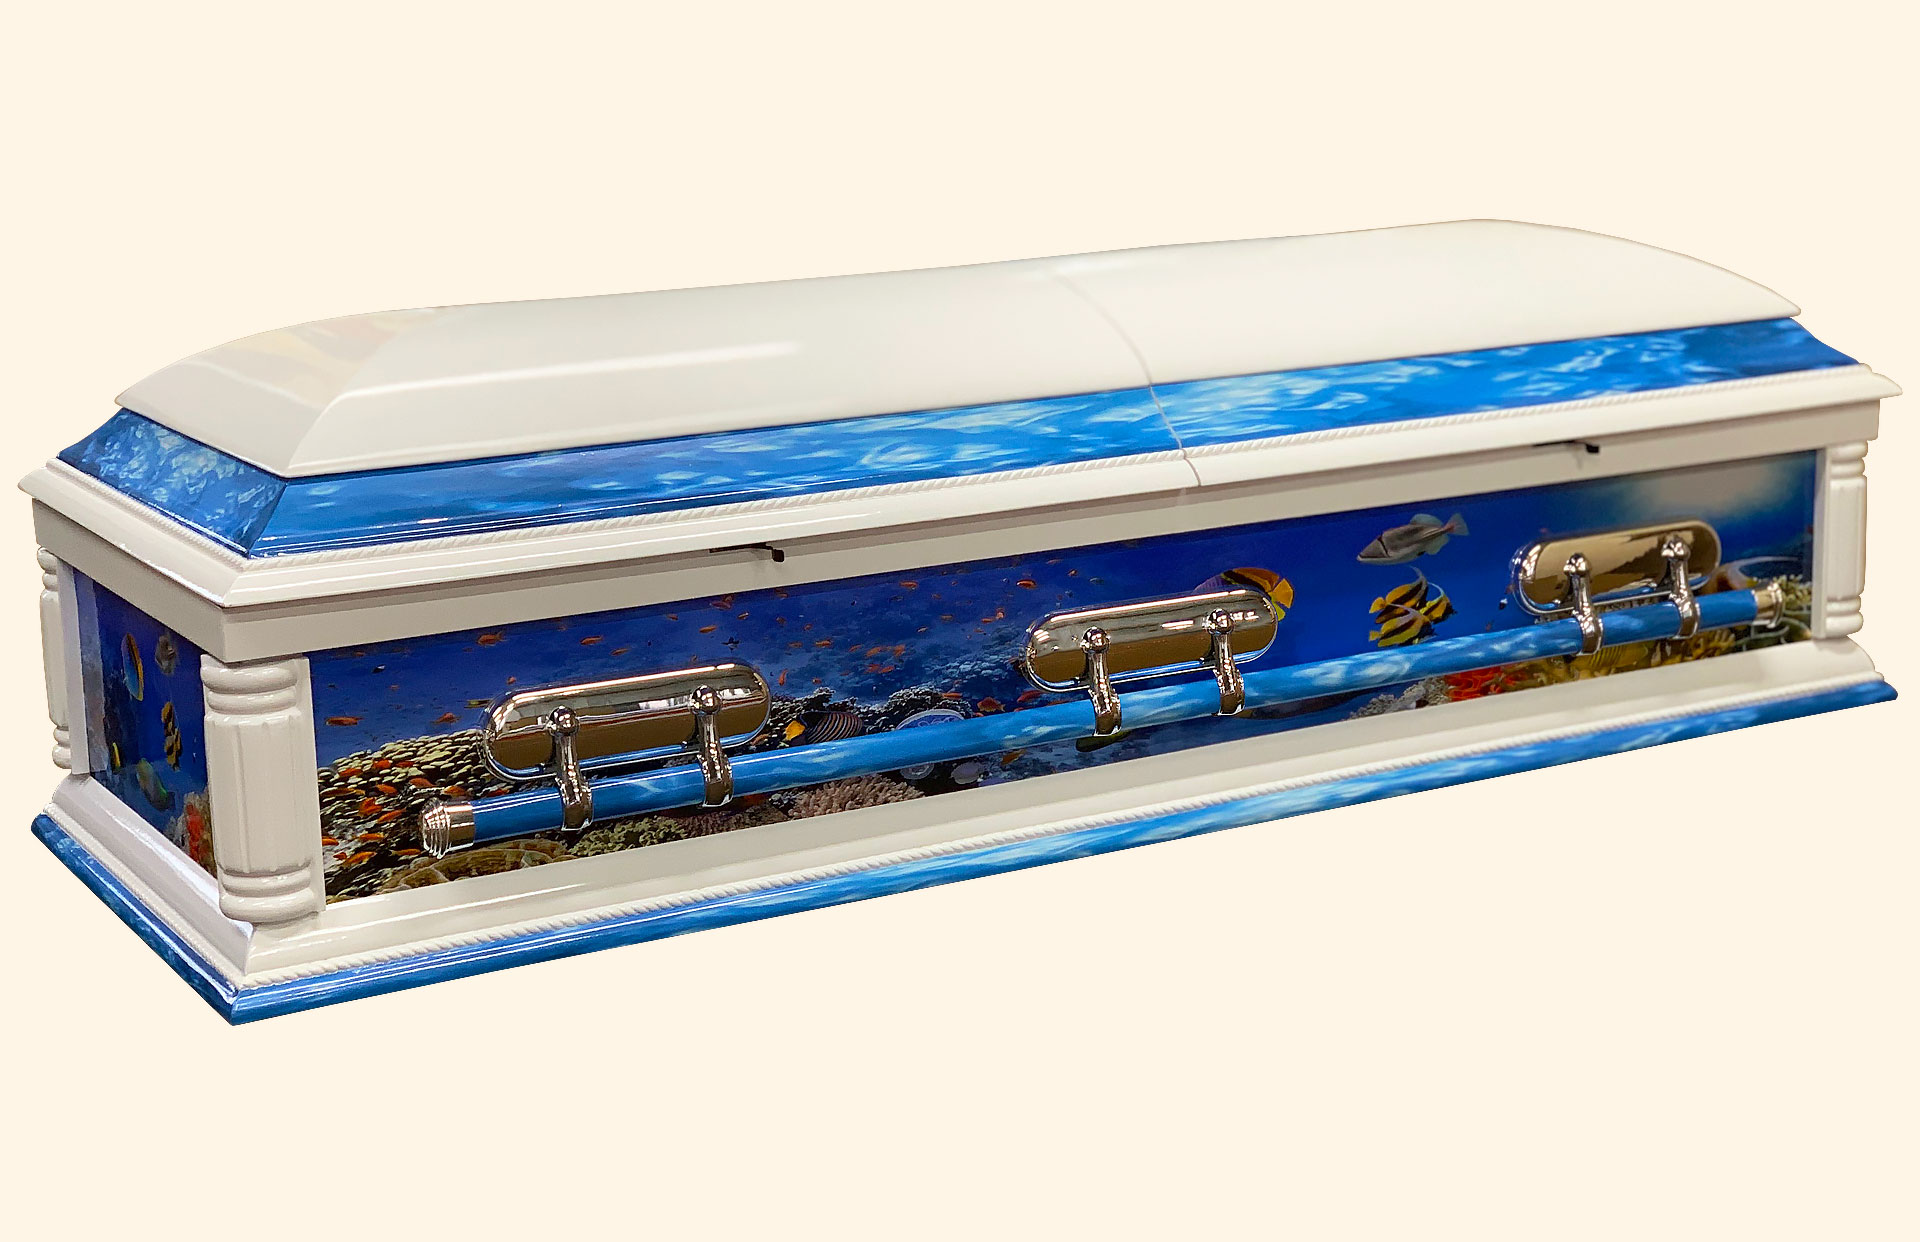 Purity Fish Tank Solid Wood American Casket